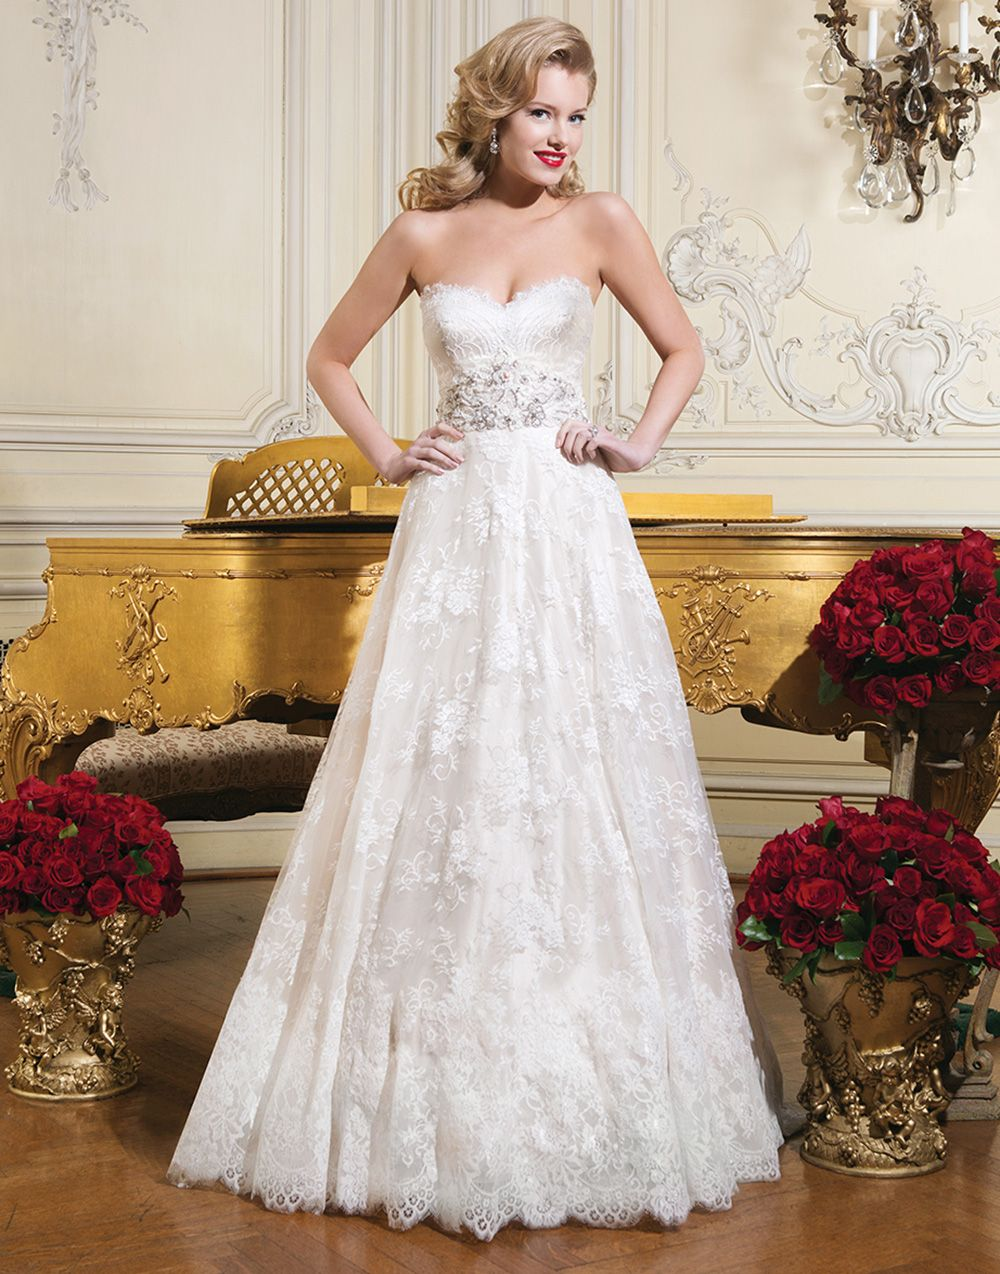 Justin alexander wedding dresses style chantilly lace ball gown